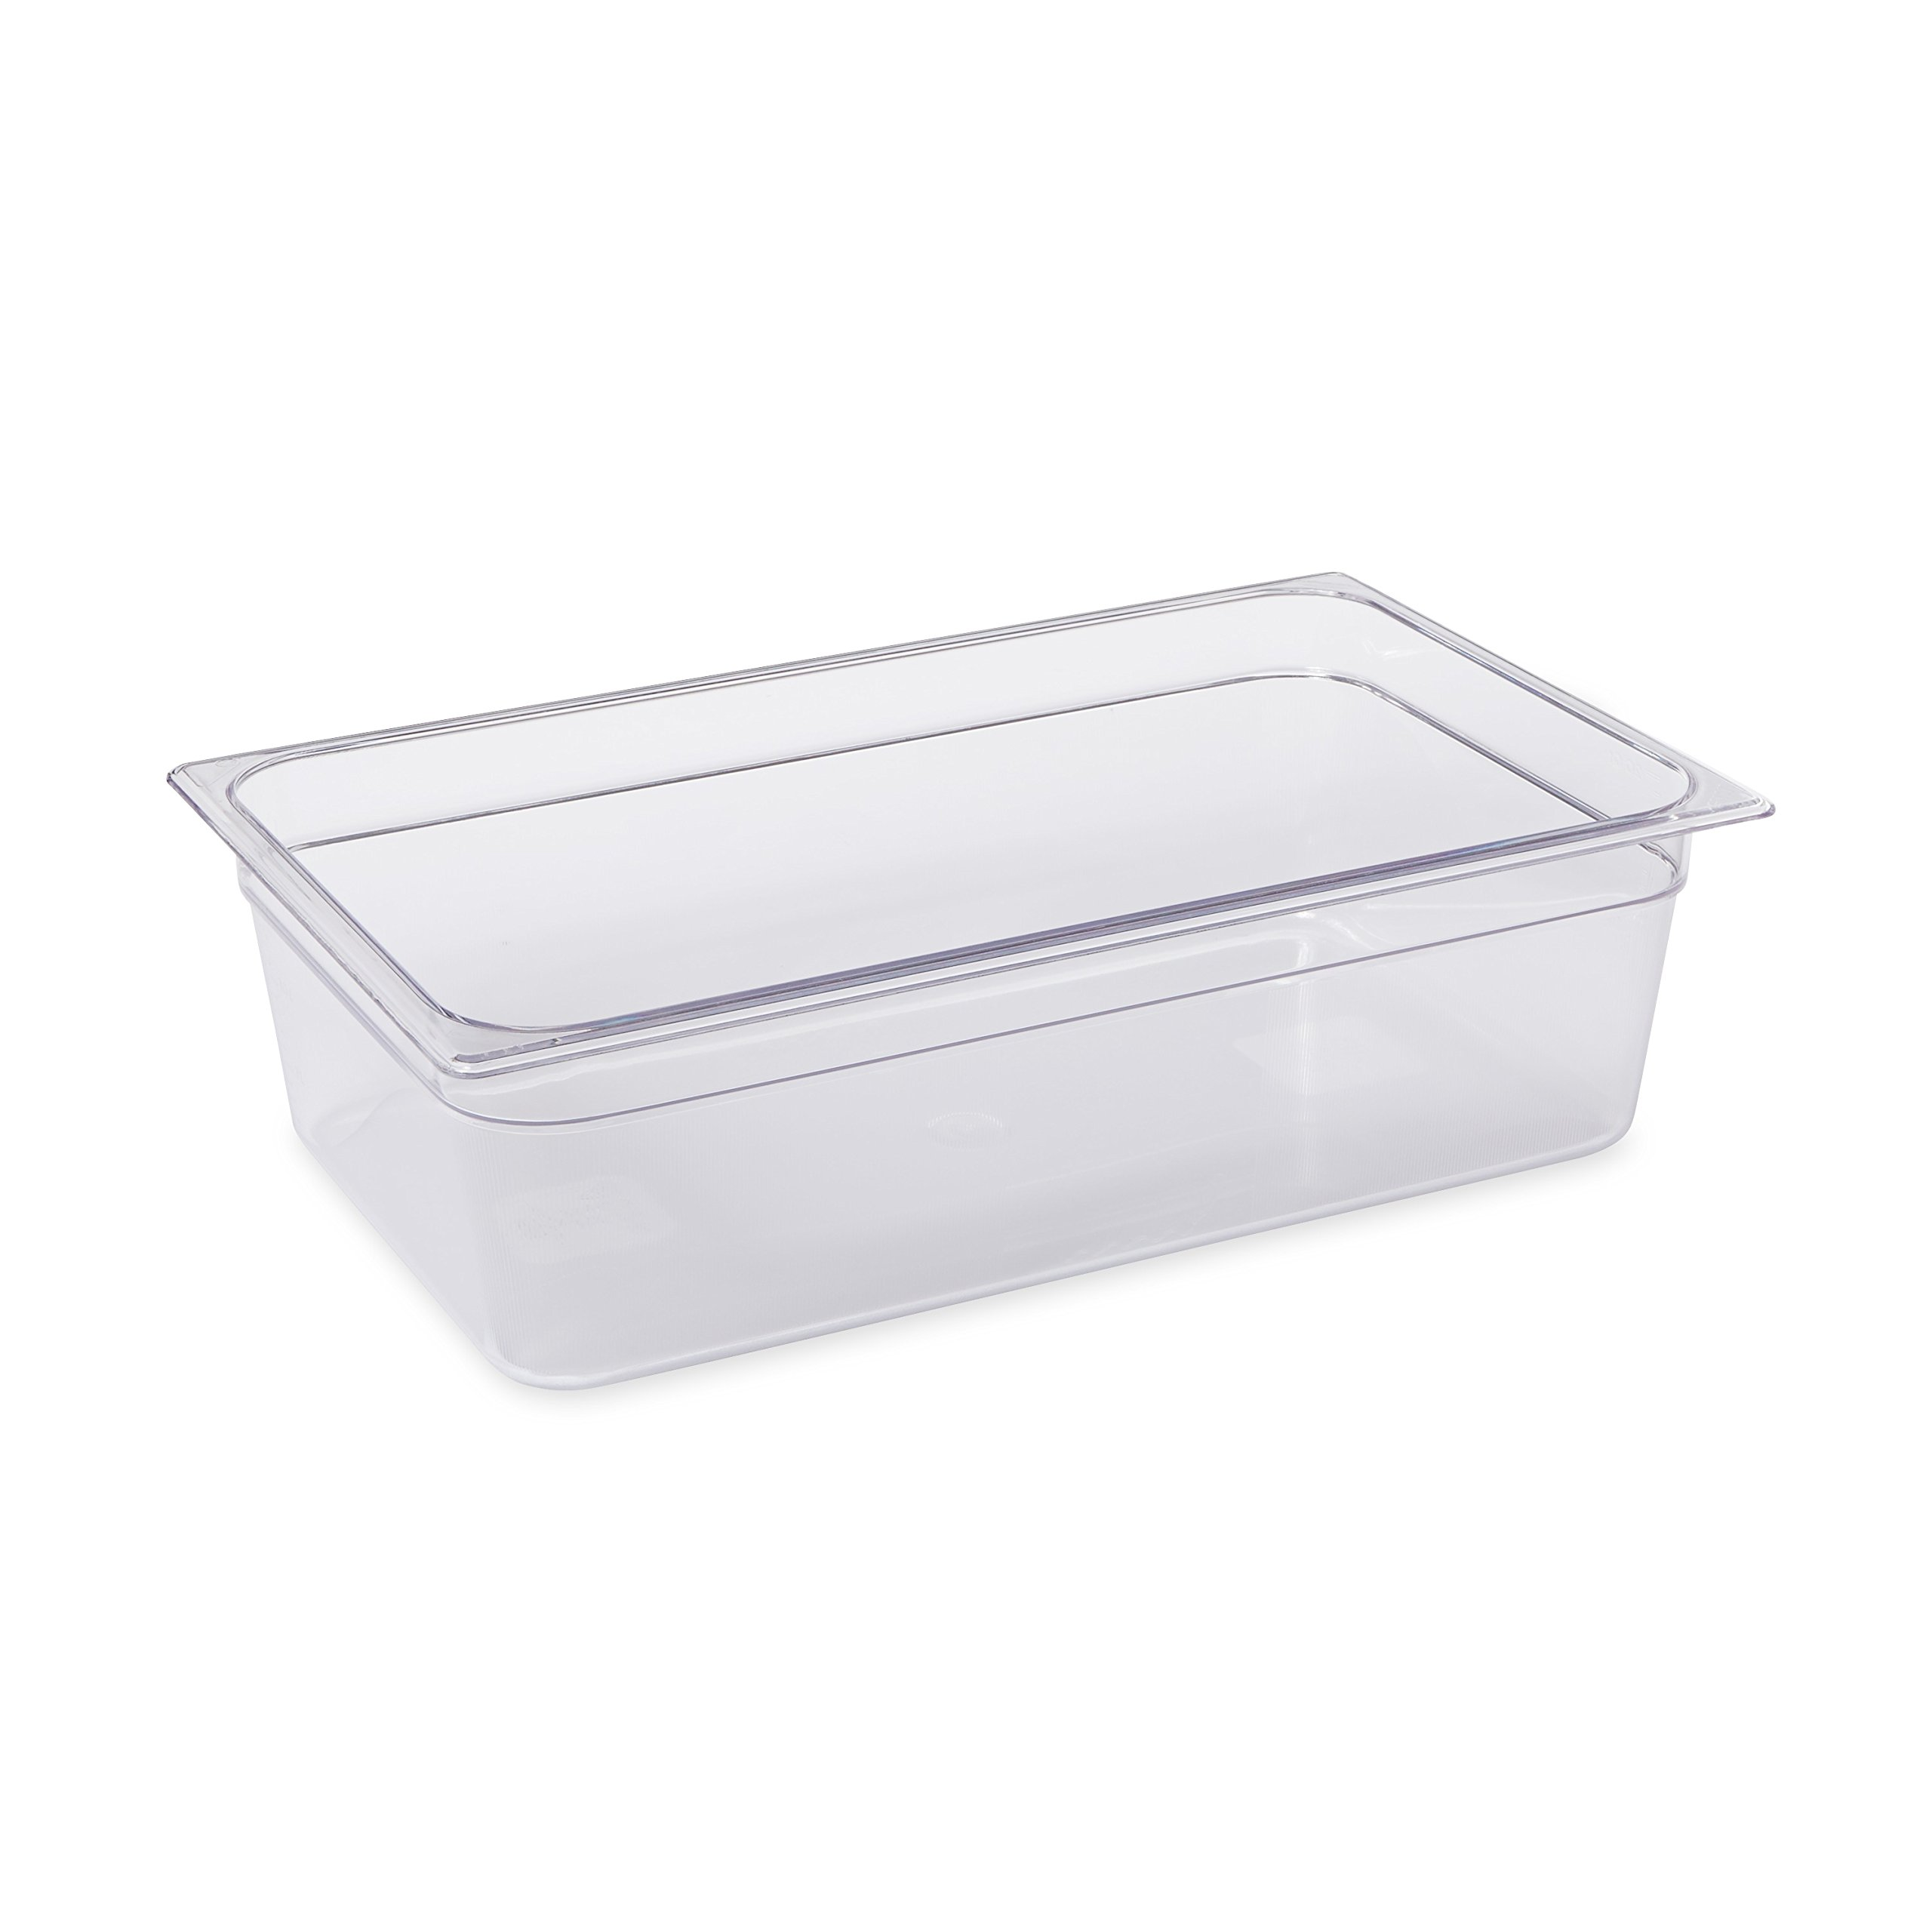 Rubbermaid Commercial Products Cold Food Insert Pan for Restaurants/Kitchens/Cafeterias, Full Size, 6 Inches Deep, Clear (FG132P00CLR) by Rubbermaid Commercial Products